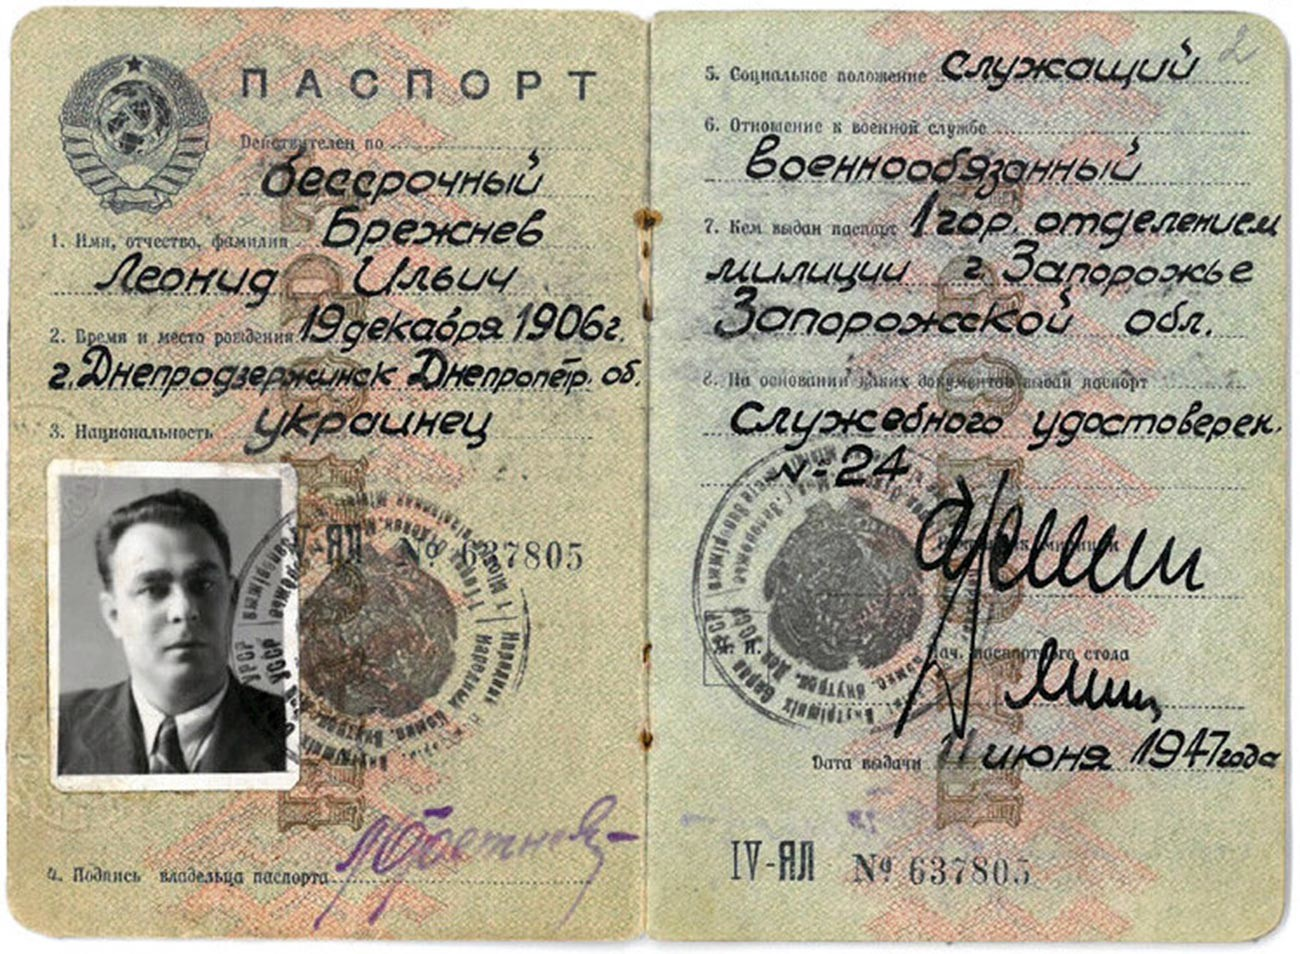 The passport of Leonid Brezhnev, General Secretary of the Executive Committee of the Communist Party of USSR